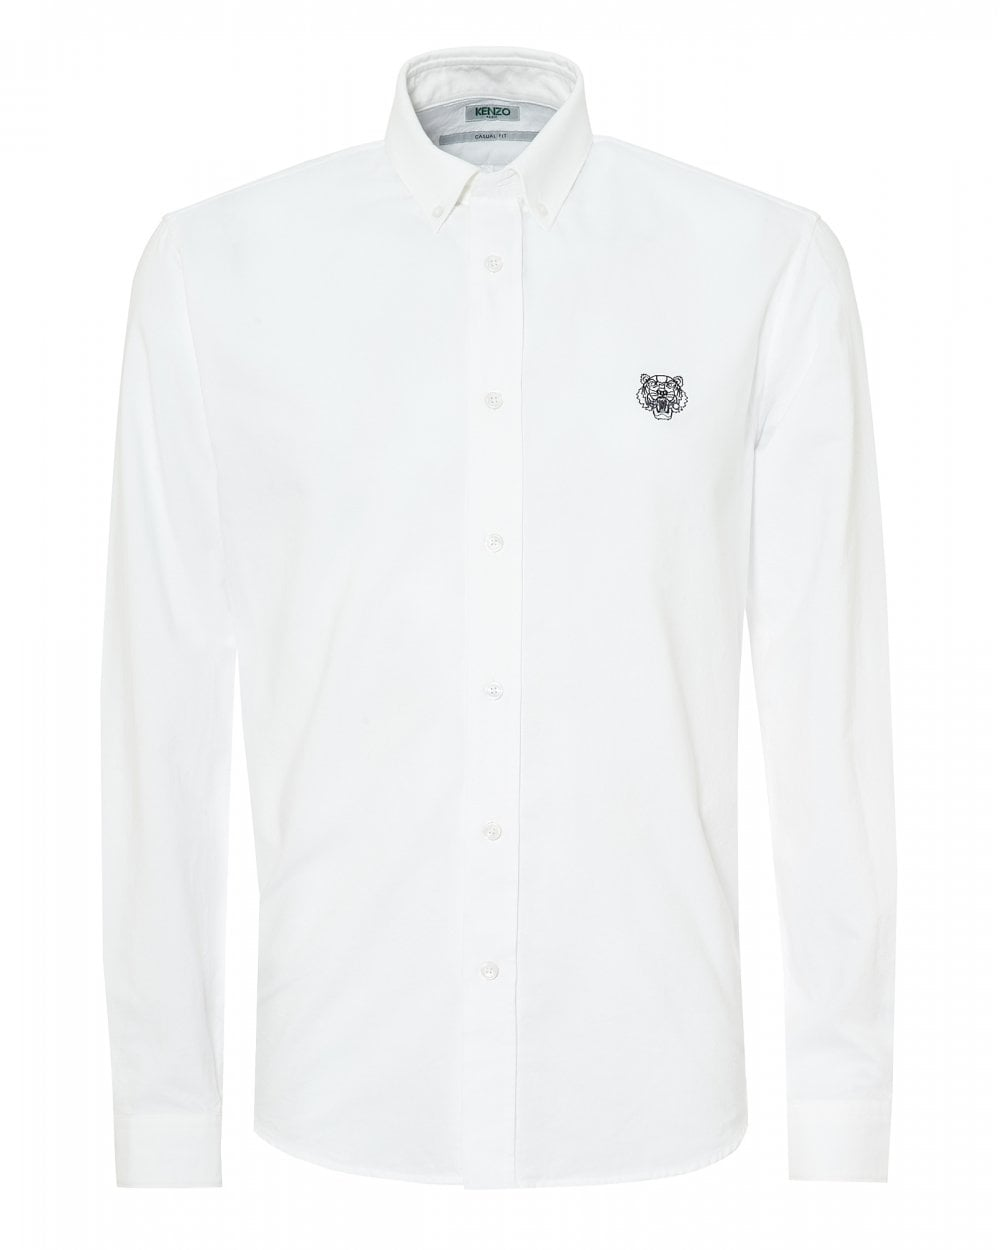 791aaf98 Kenzo Mens Tiger Crest Button Down Slim Fit White Shirt